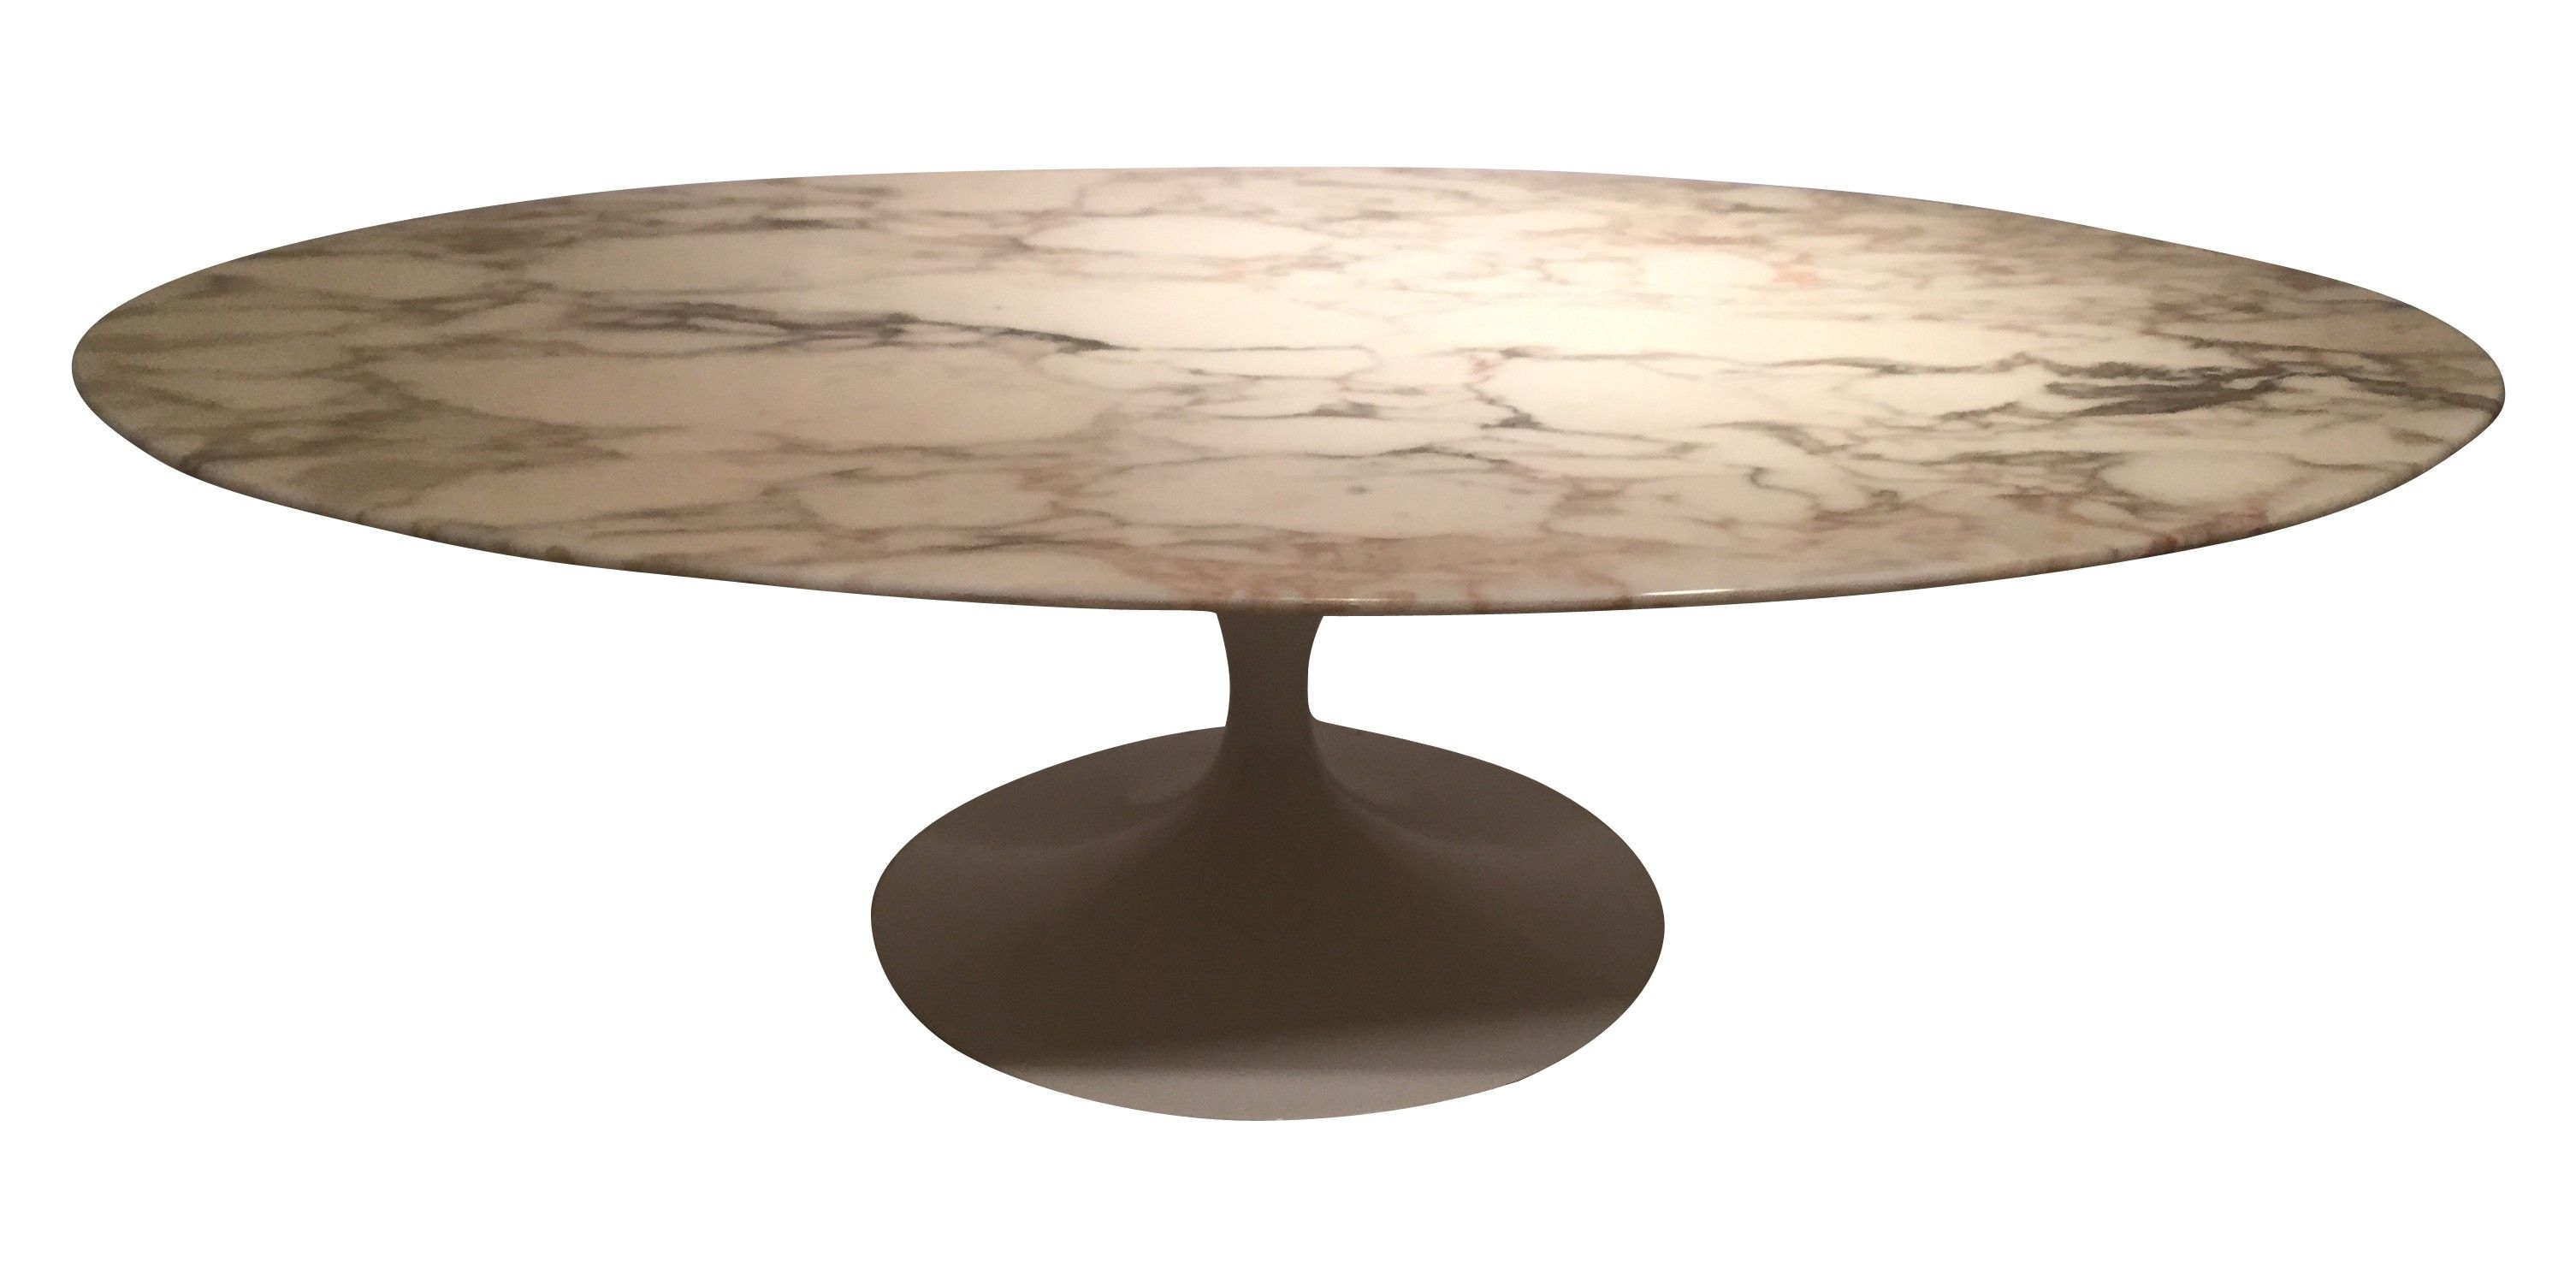 Grande table basse ovale en marbre eero saarinen ann es for Table basse salon ronde ou ovale